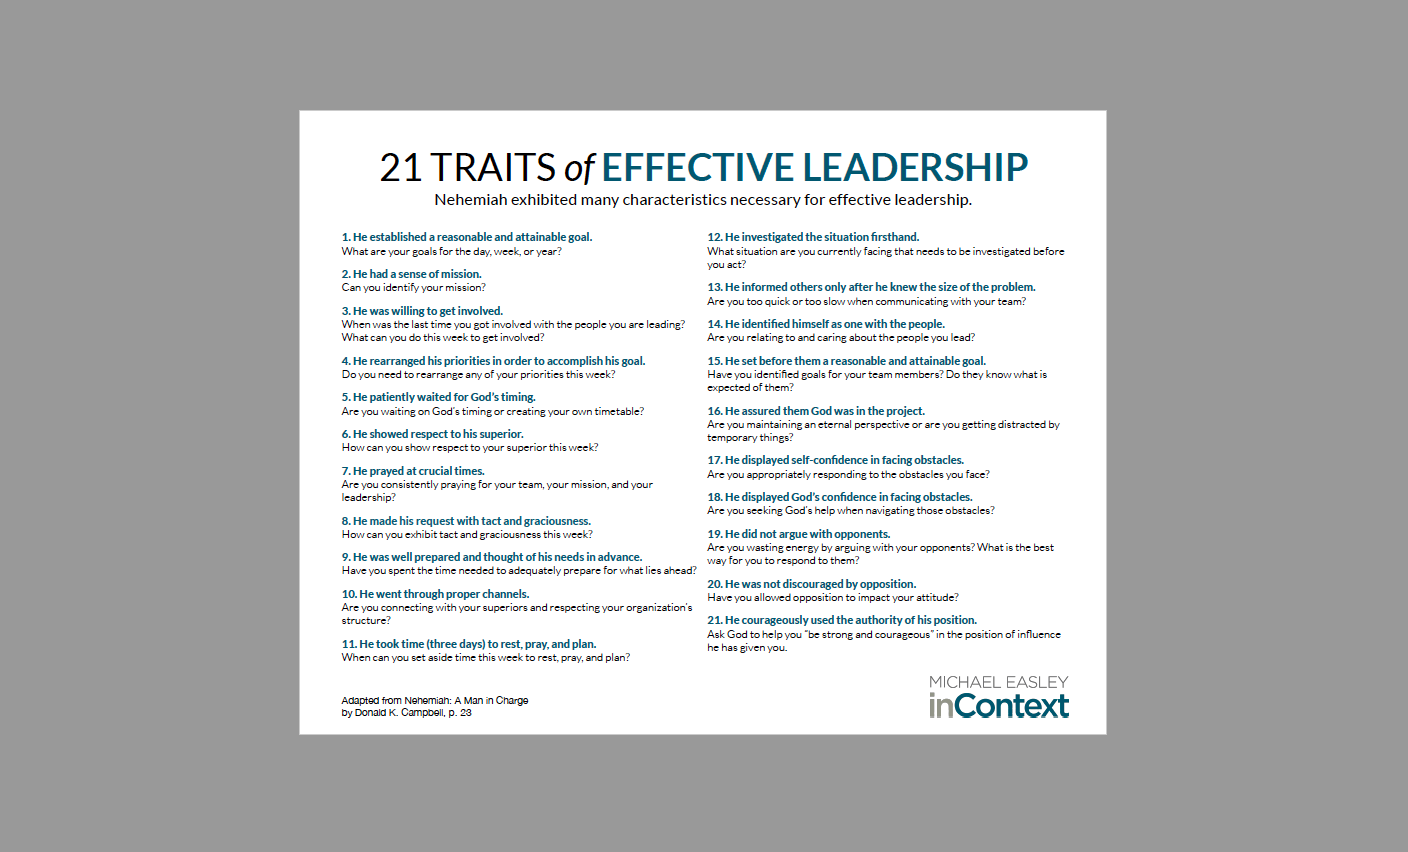 21 Traits of Effective Leadership